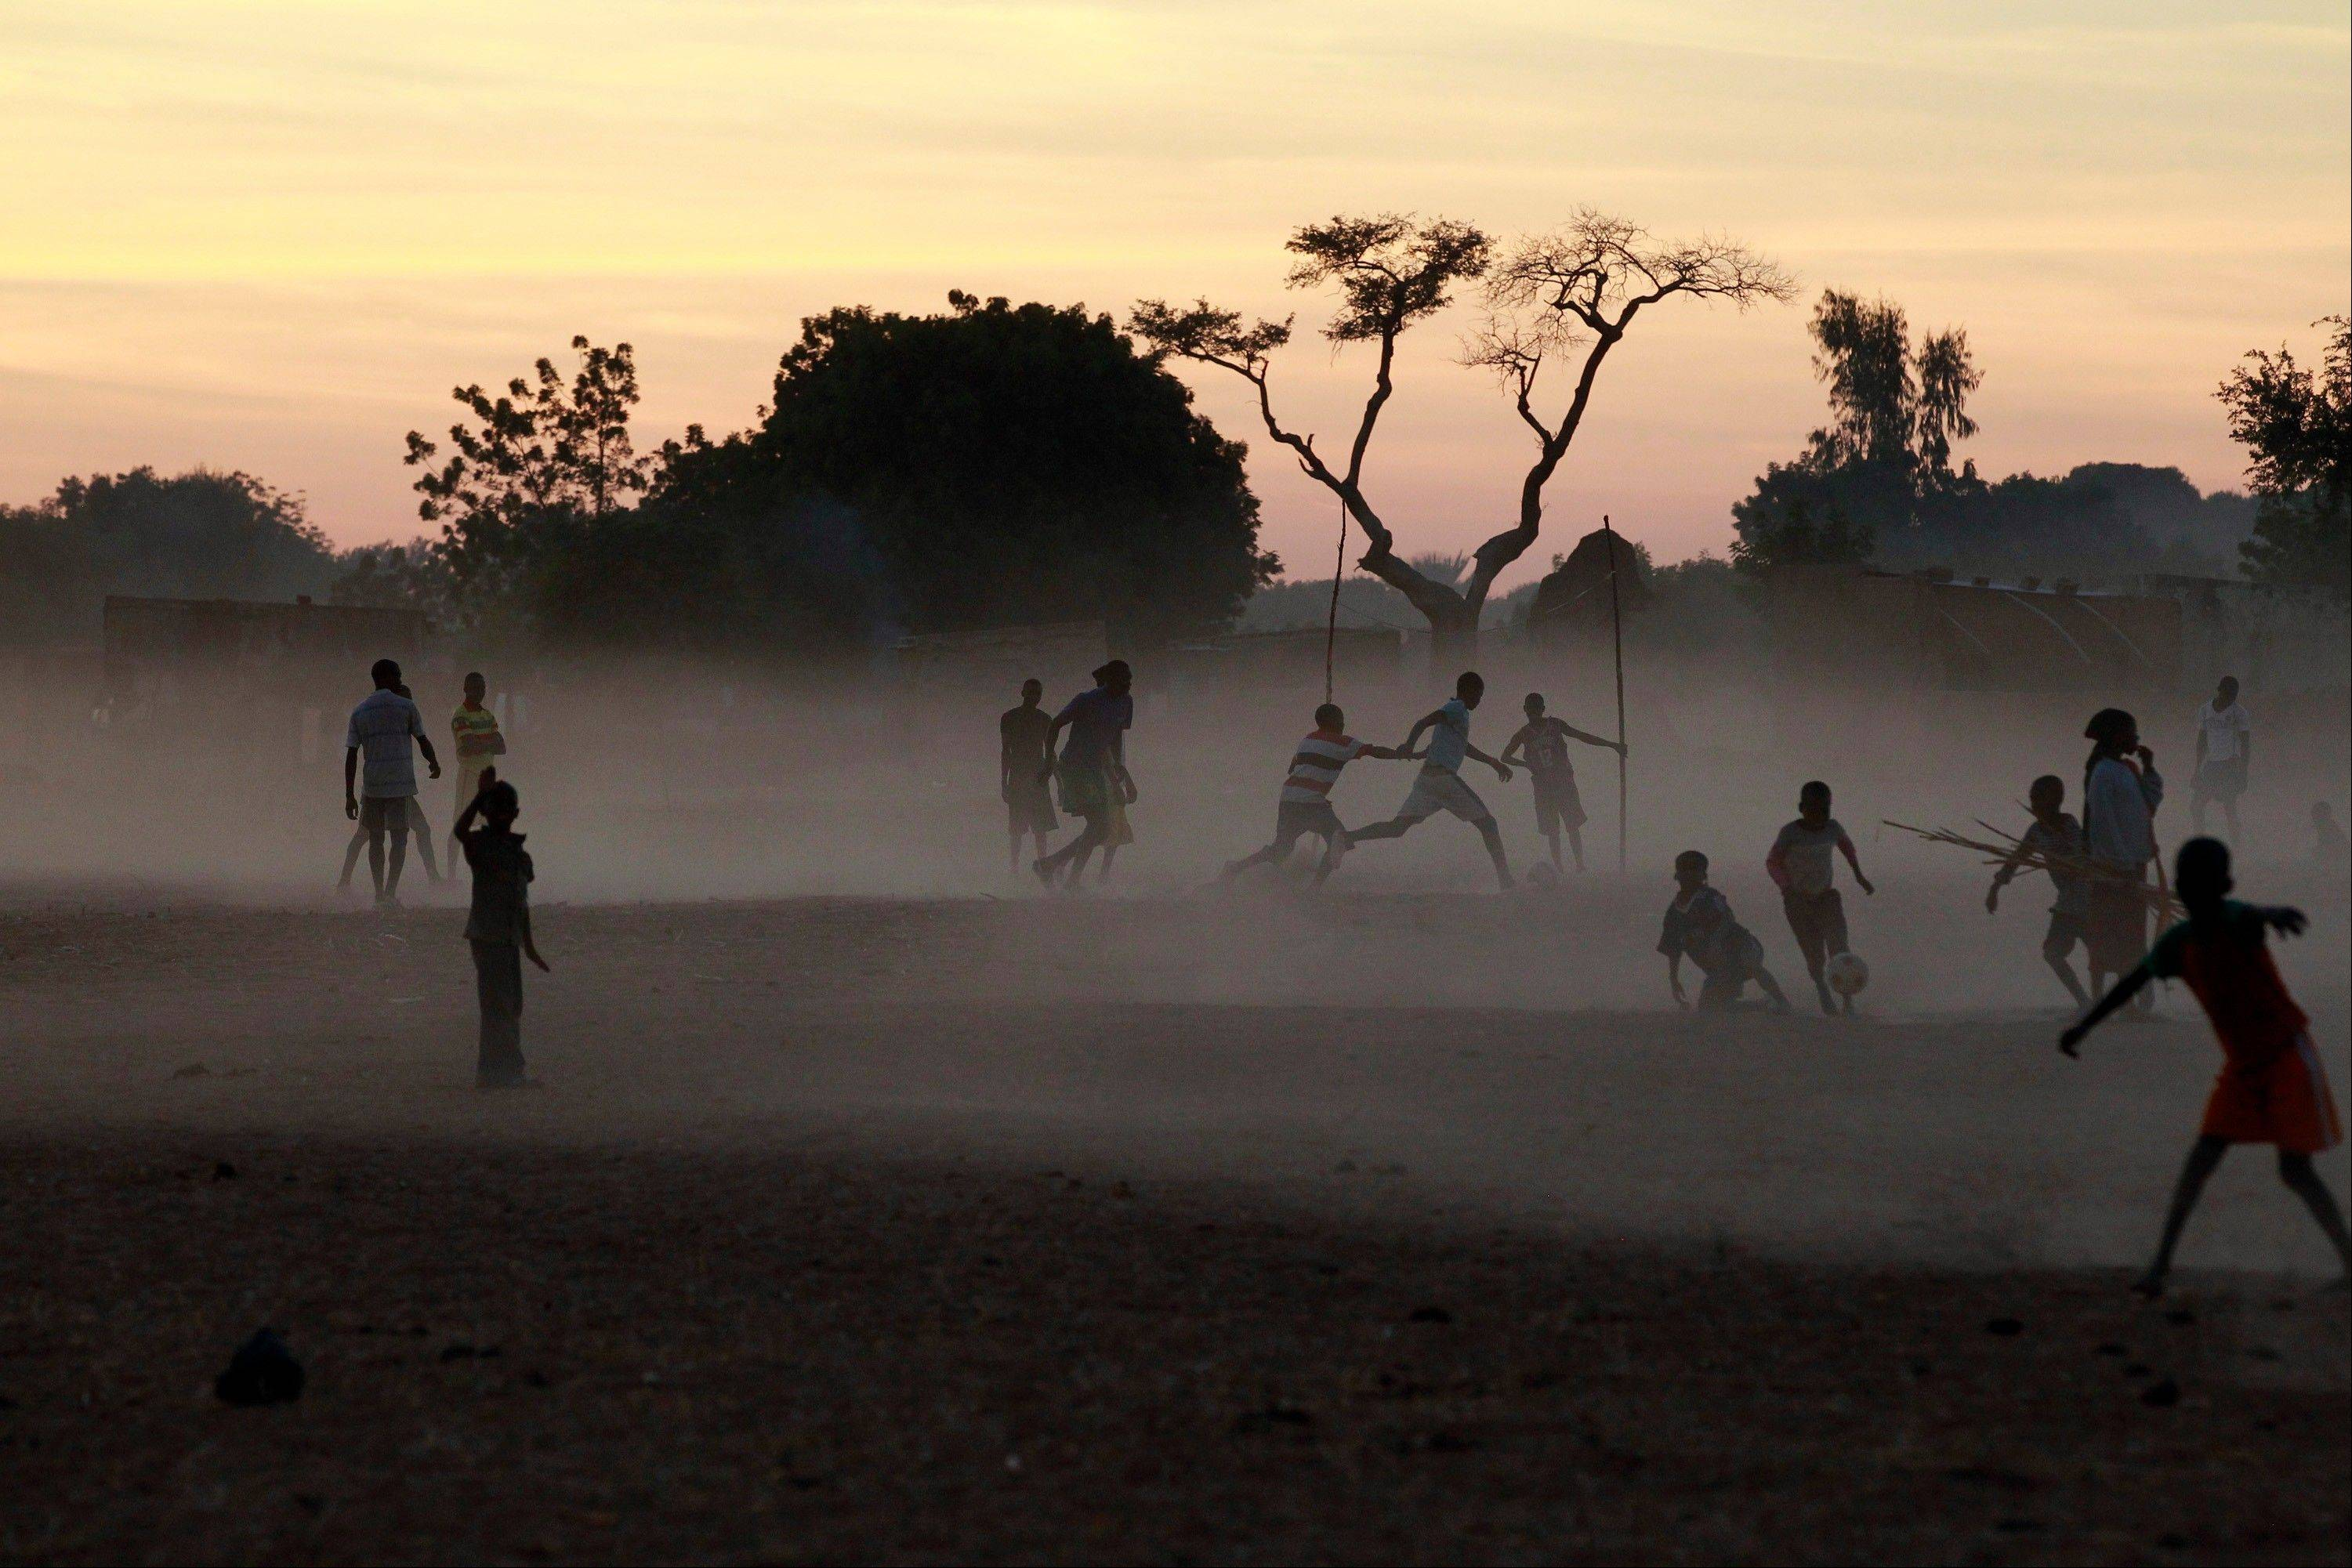 Children and adults alike play soccer on a dusty field in Segou, central Mali, some 240 km (140 miles) from Bamako Monday Jan. 21, 2013. French troops in armored personnel carriers rolled through the streets of Diabaly on Monday, winning praise from residents of this besieged town after Malian forces retook control of it with French help a week after radical Islamists invaded. The Islamists also have deserted the town of Douentza, which they had held since September, according to a local official who said French and Malian forces arrived there on Monday as well.